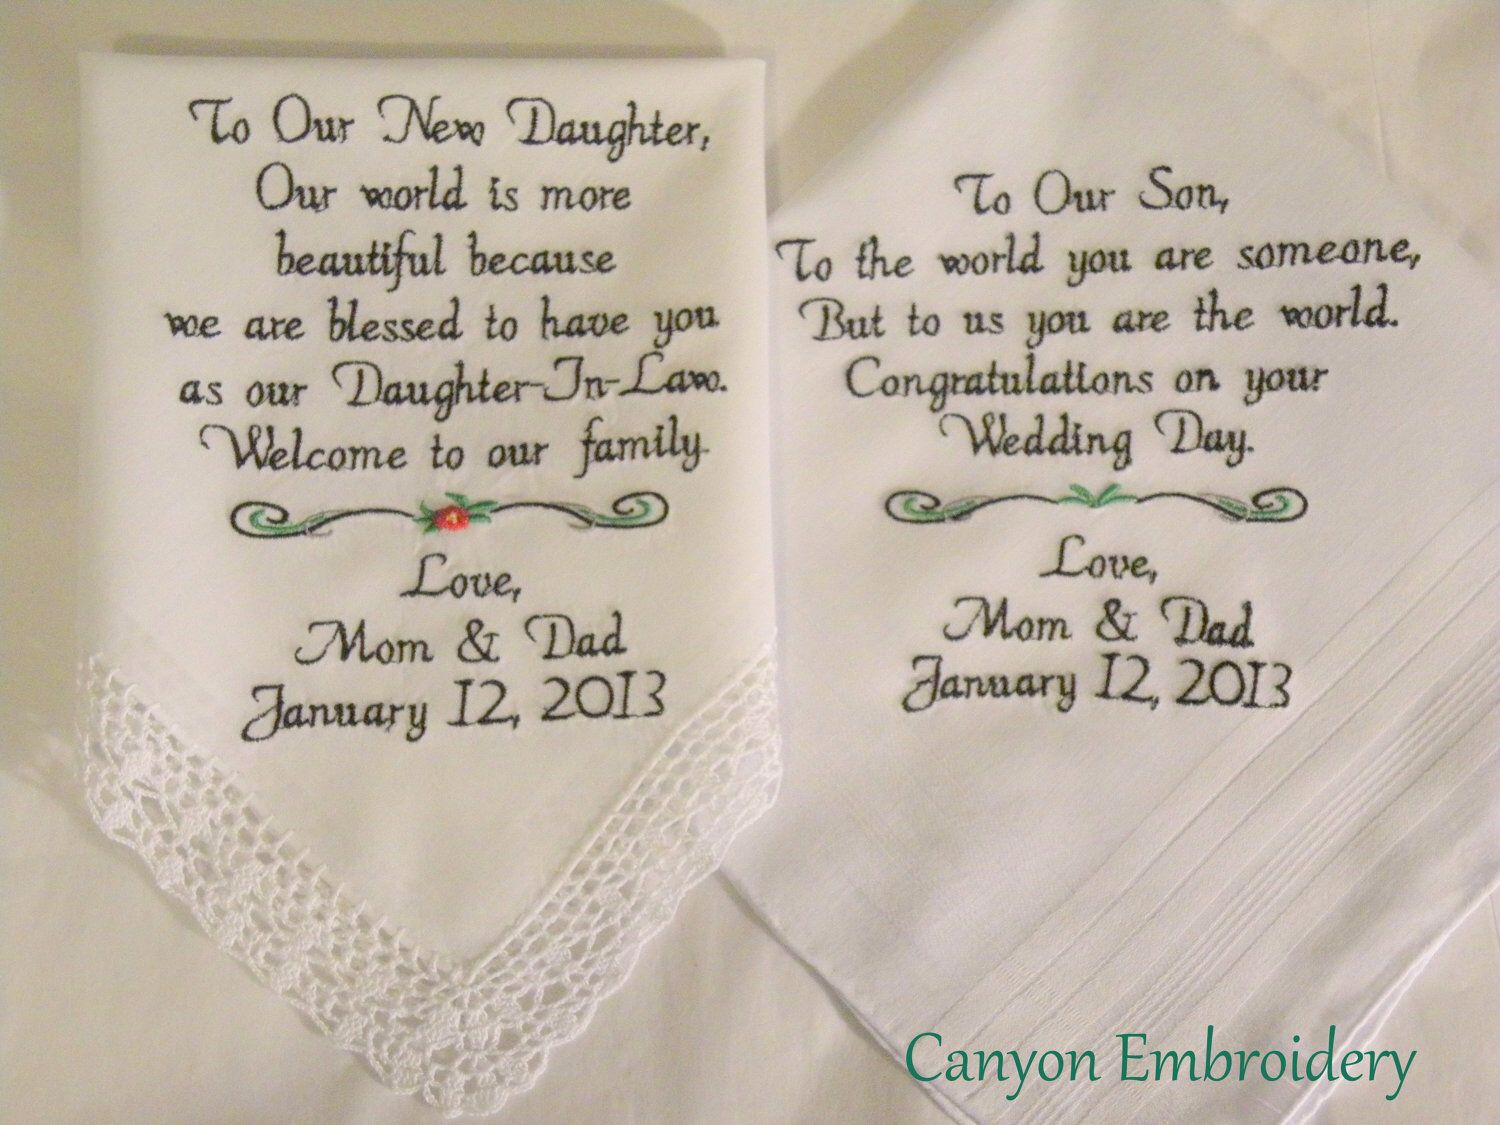 New Daughter Son Wedding Gift From Mom And Dad To The Bride Groom